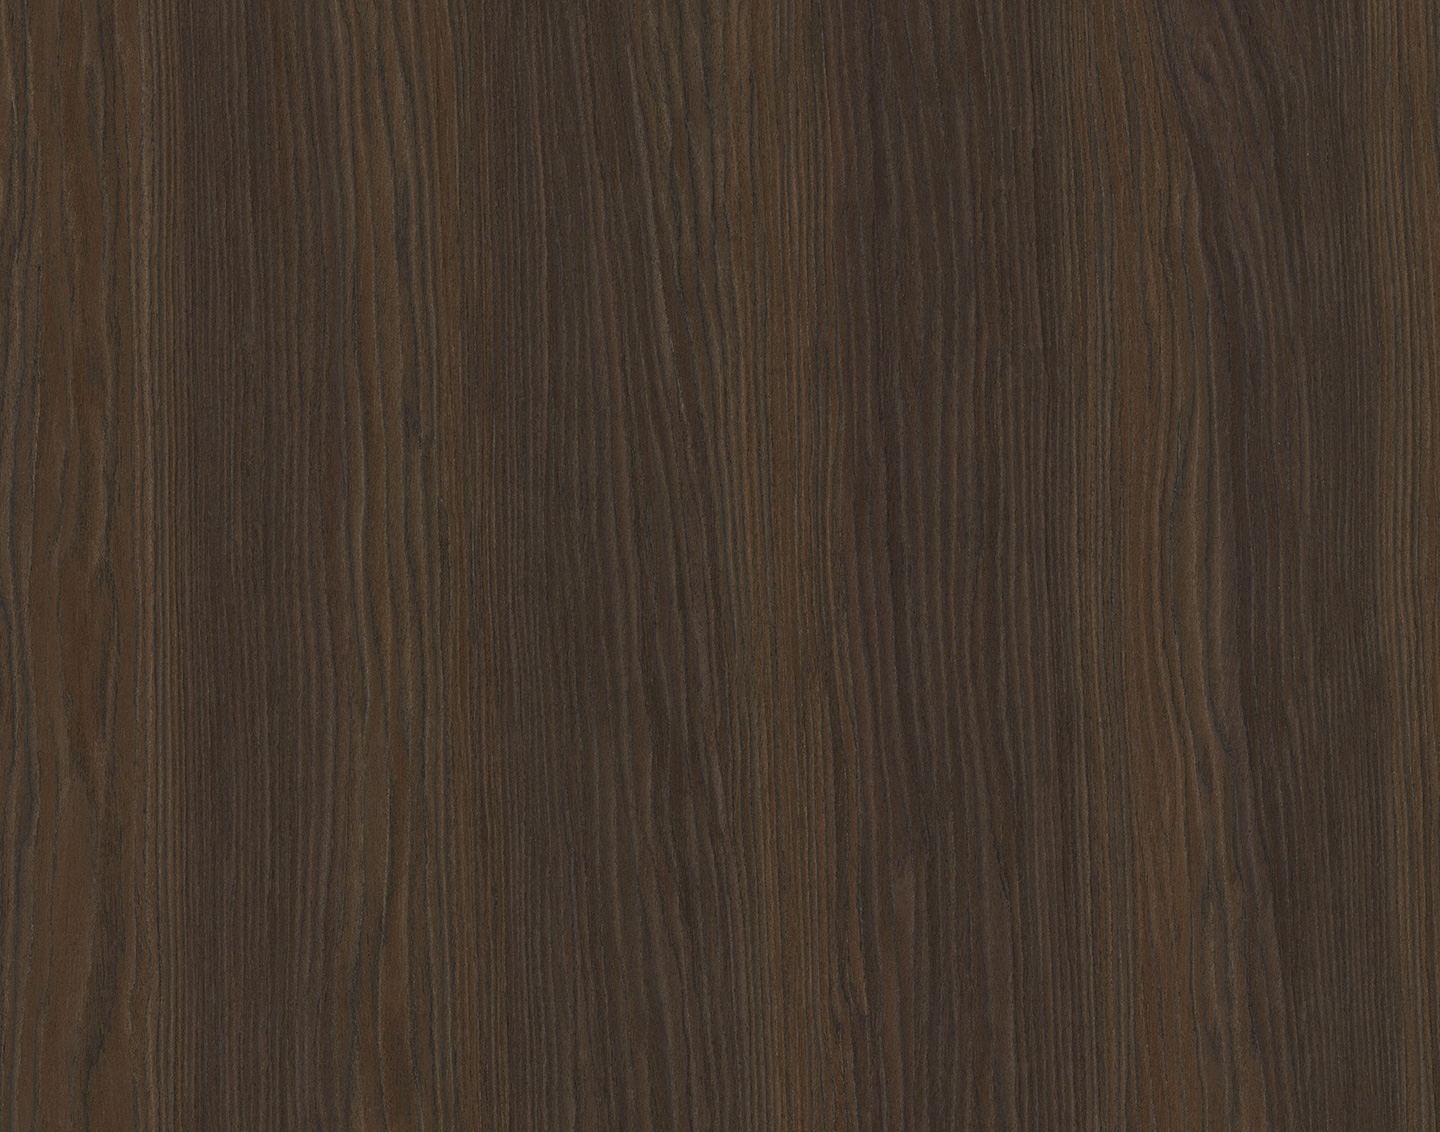 10 85 Smoked Oak Eden Anglo Veneers